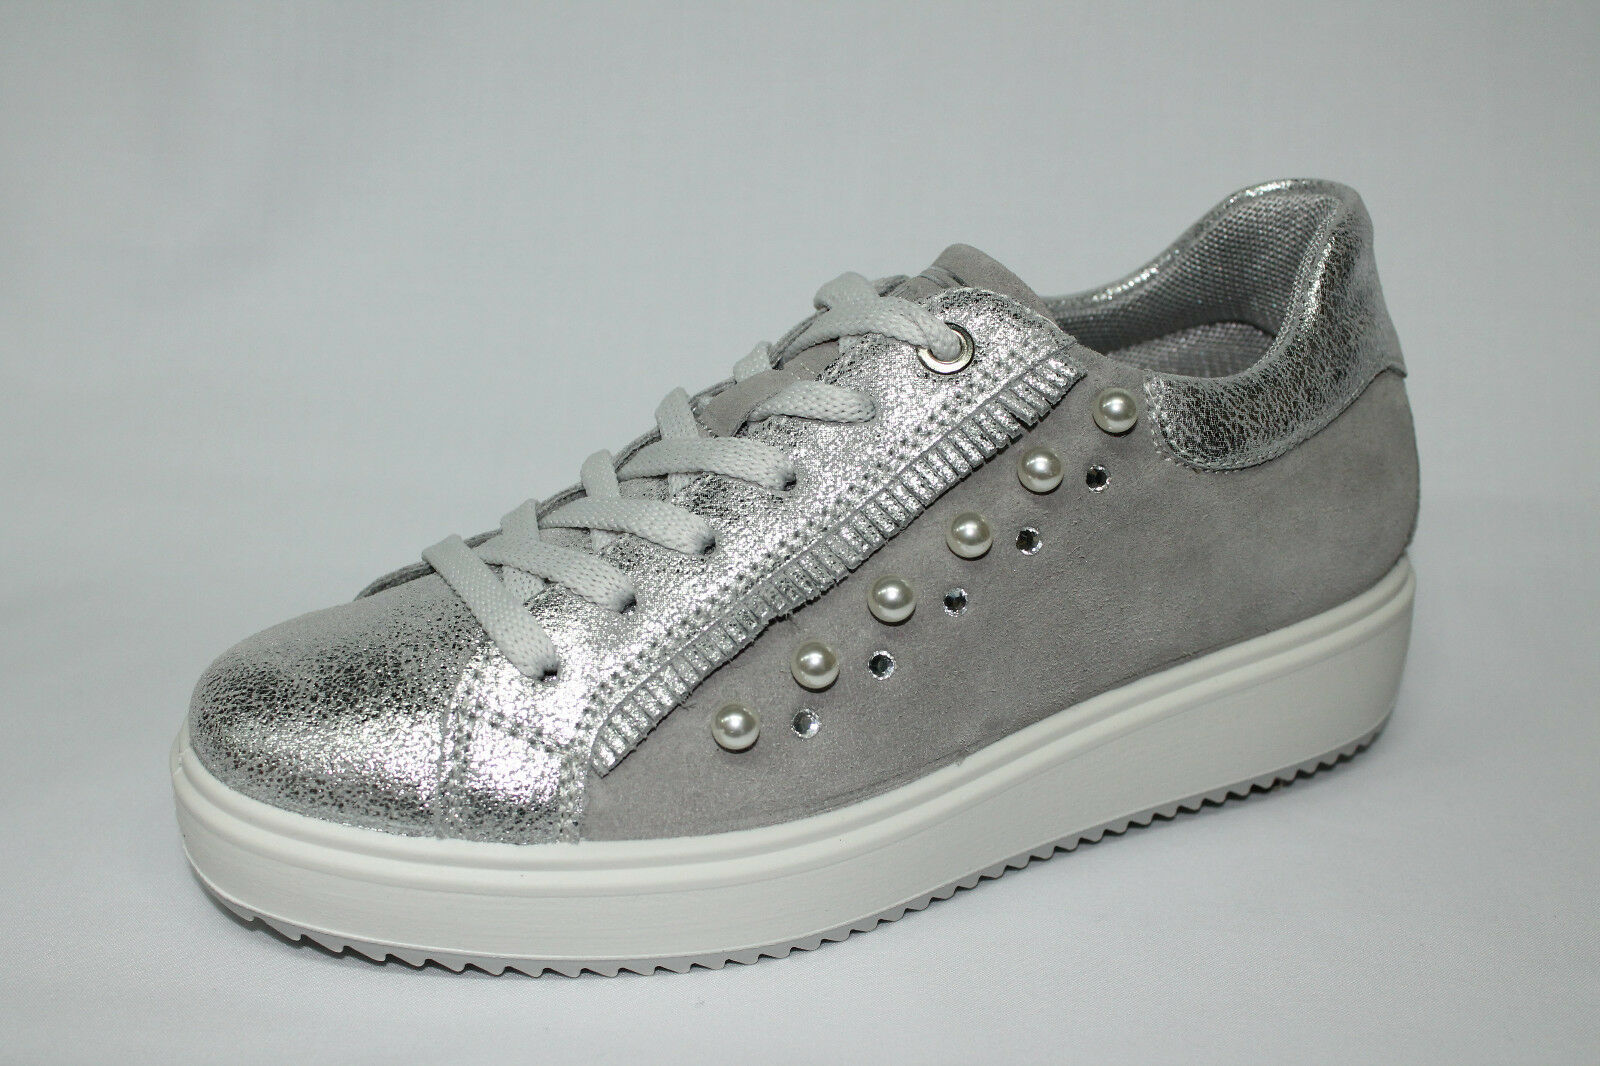 Sneakers Igi&co 1148722 argento zeppa 3cm Made in  listino - 20%